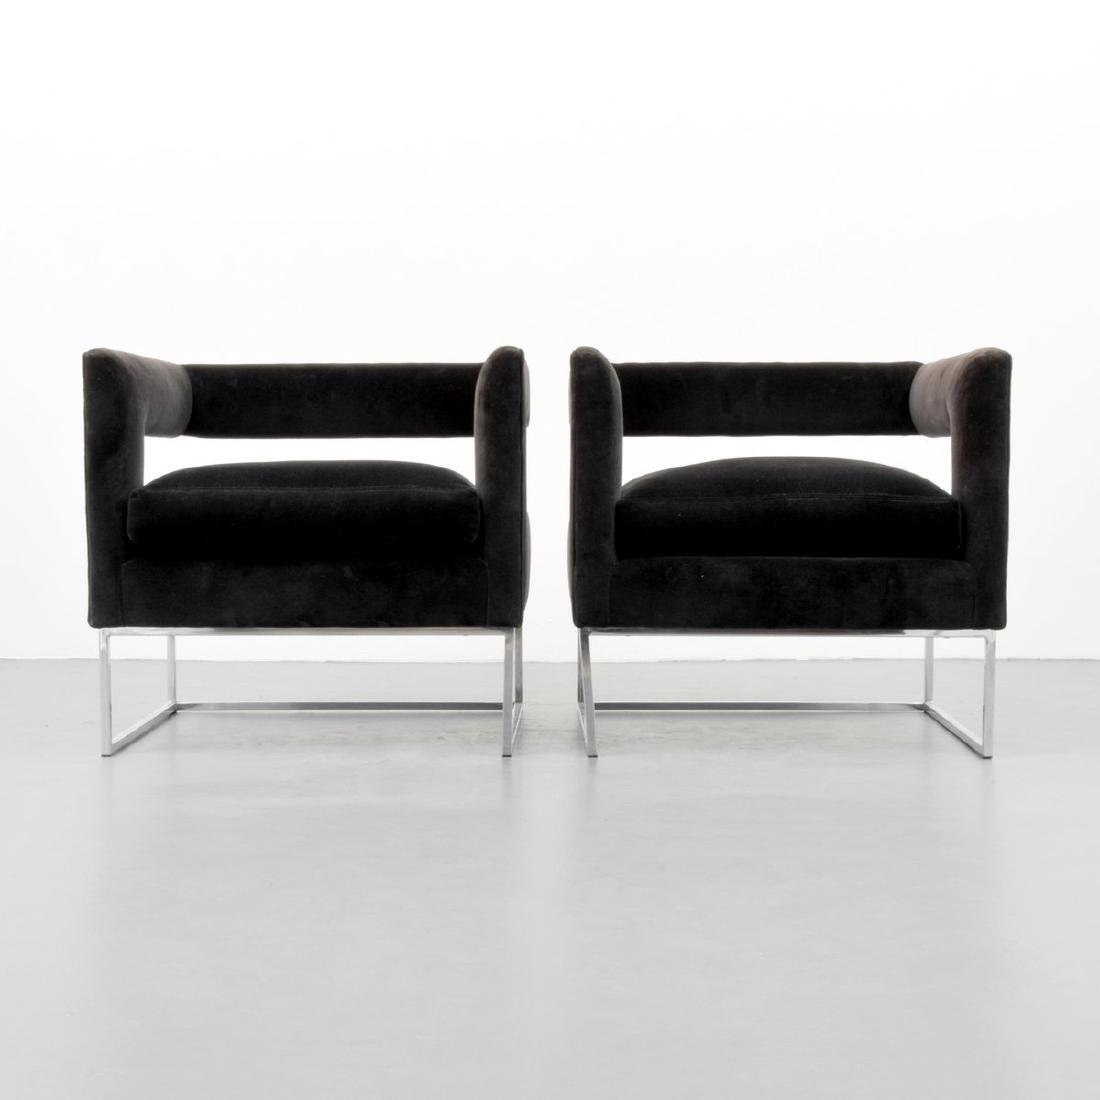 Pair of Milo Baughman Lounge Chairs - 2